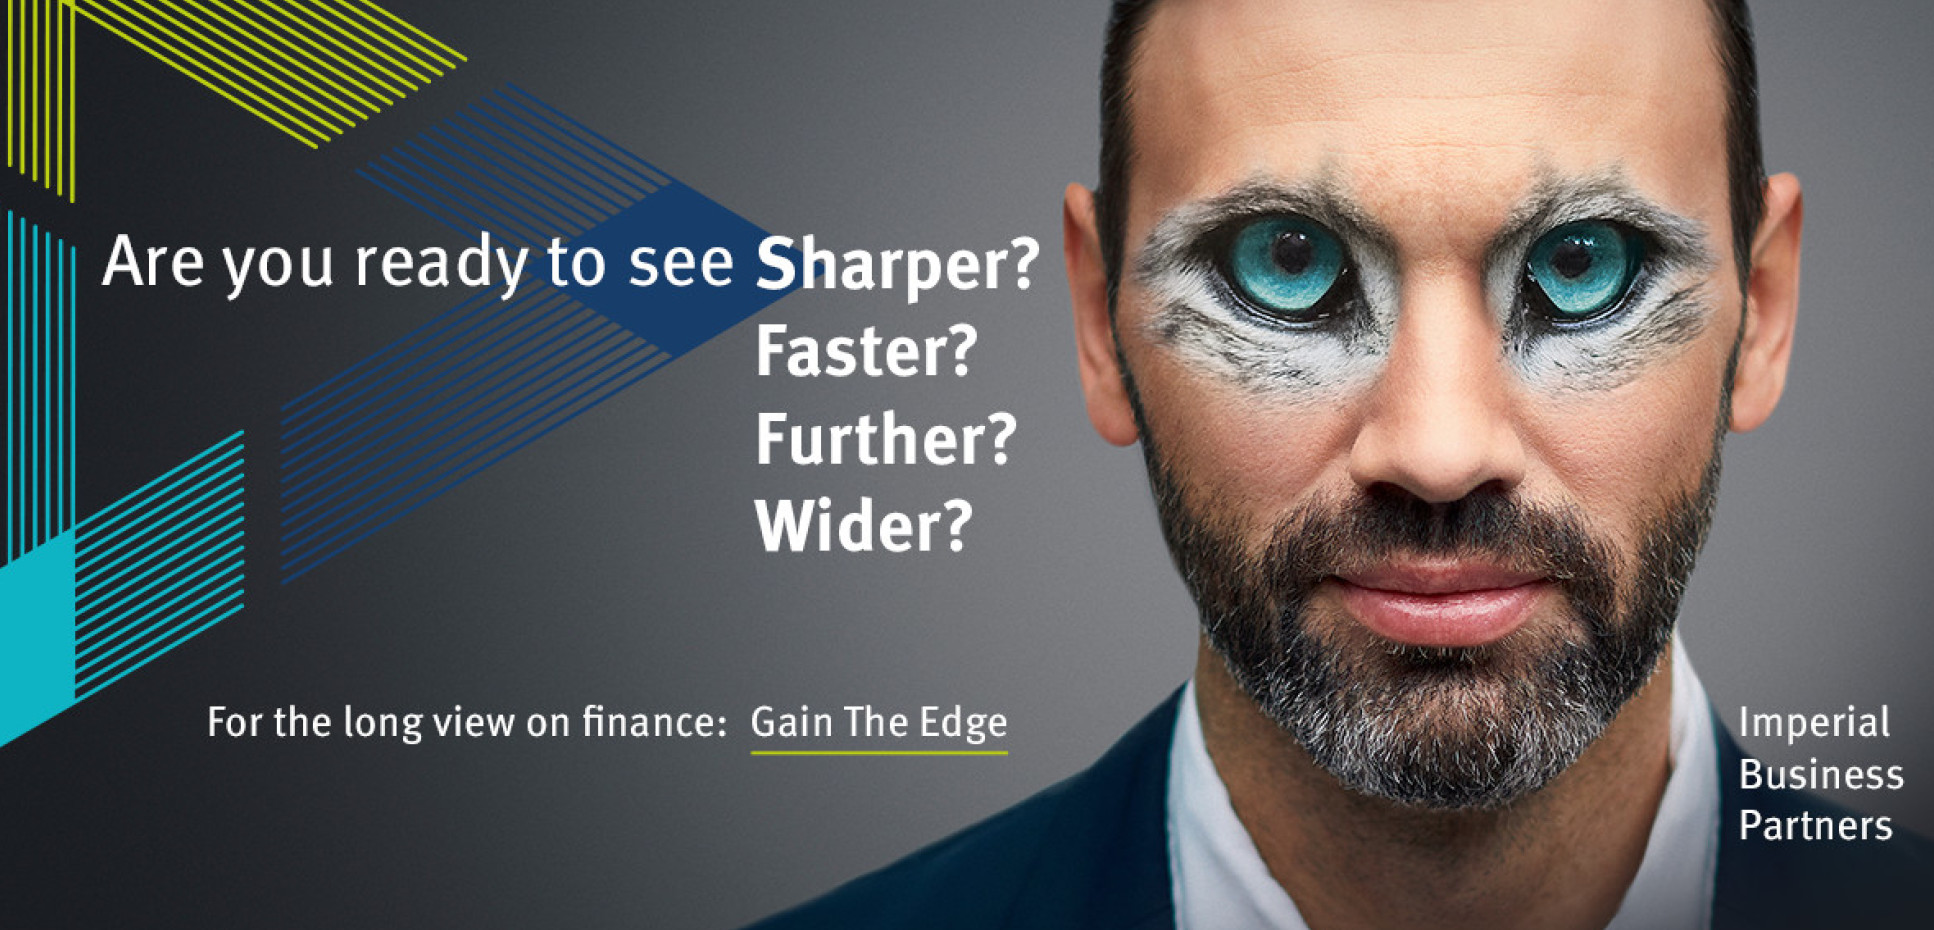 Are you ready to see Sharper? Faster? Further? Wider? For the long view on finance: Gain the Edge. Imperial Business Partners. Main with animal eyes, to represent instincts.